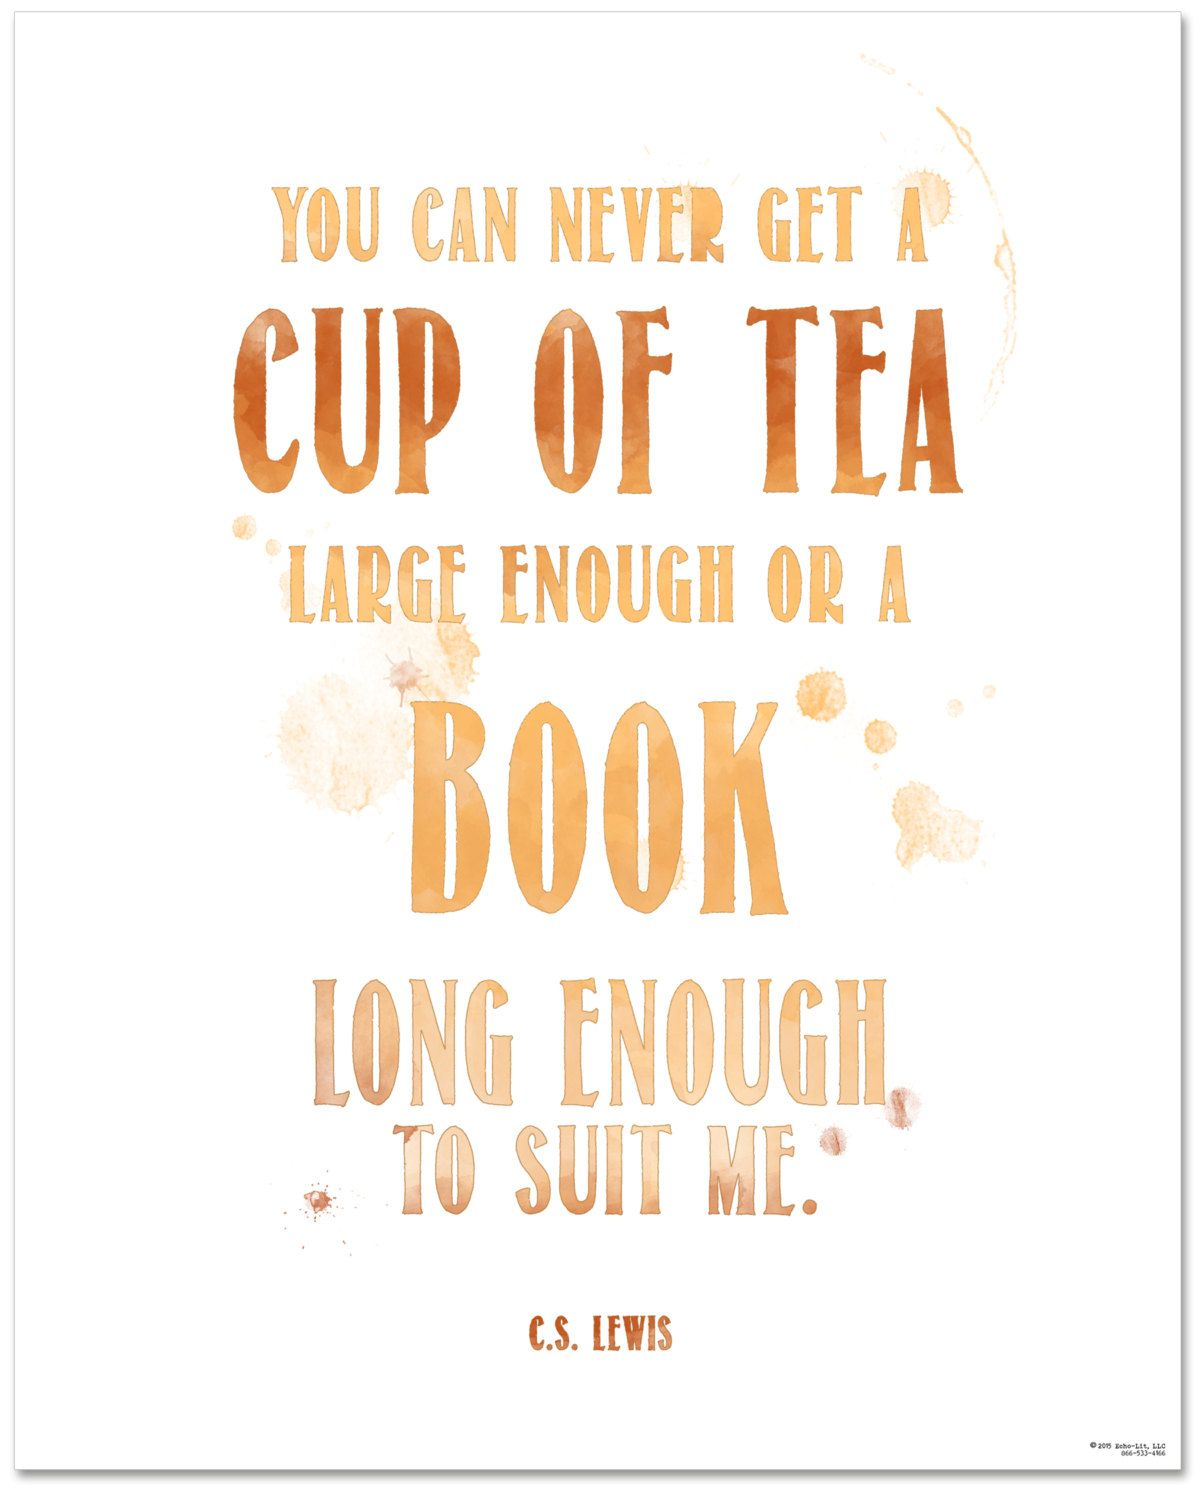 Tea Quote Poster C S Lewis Cup Of Tea Large Enough Book Long